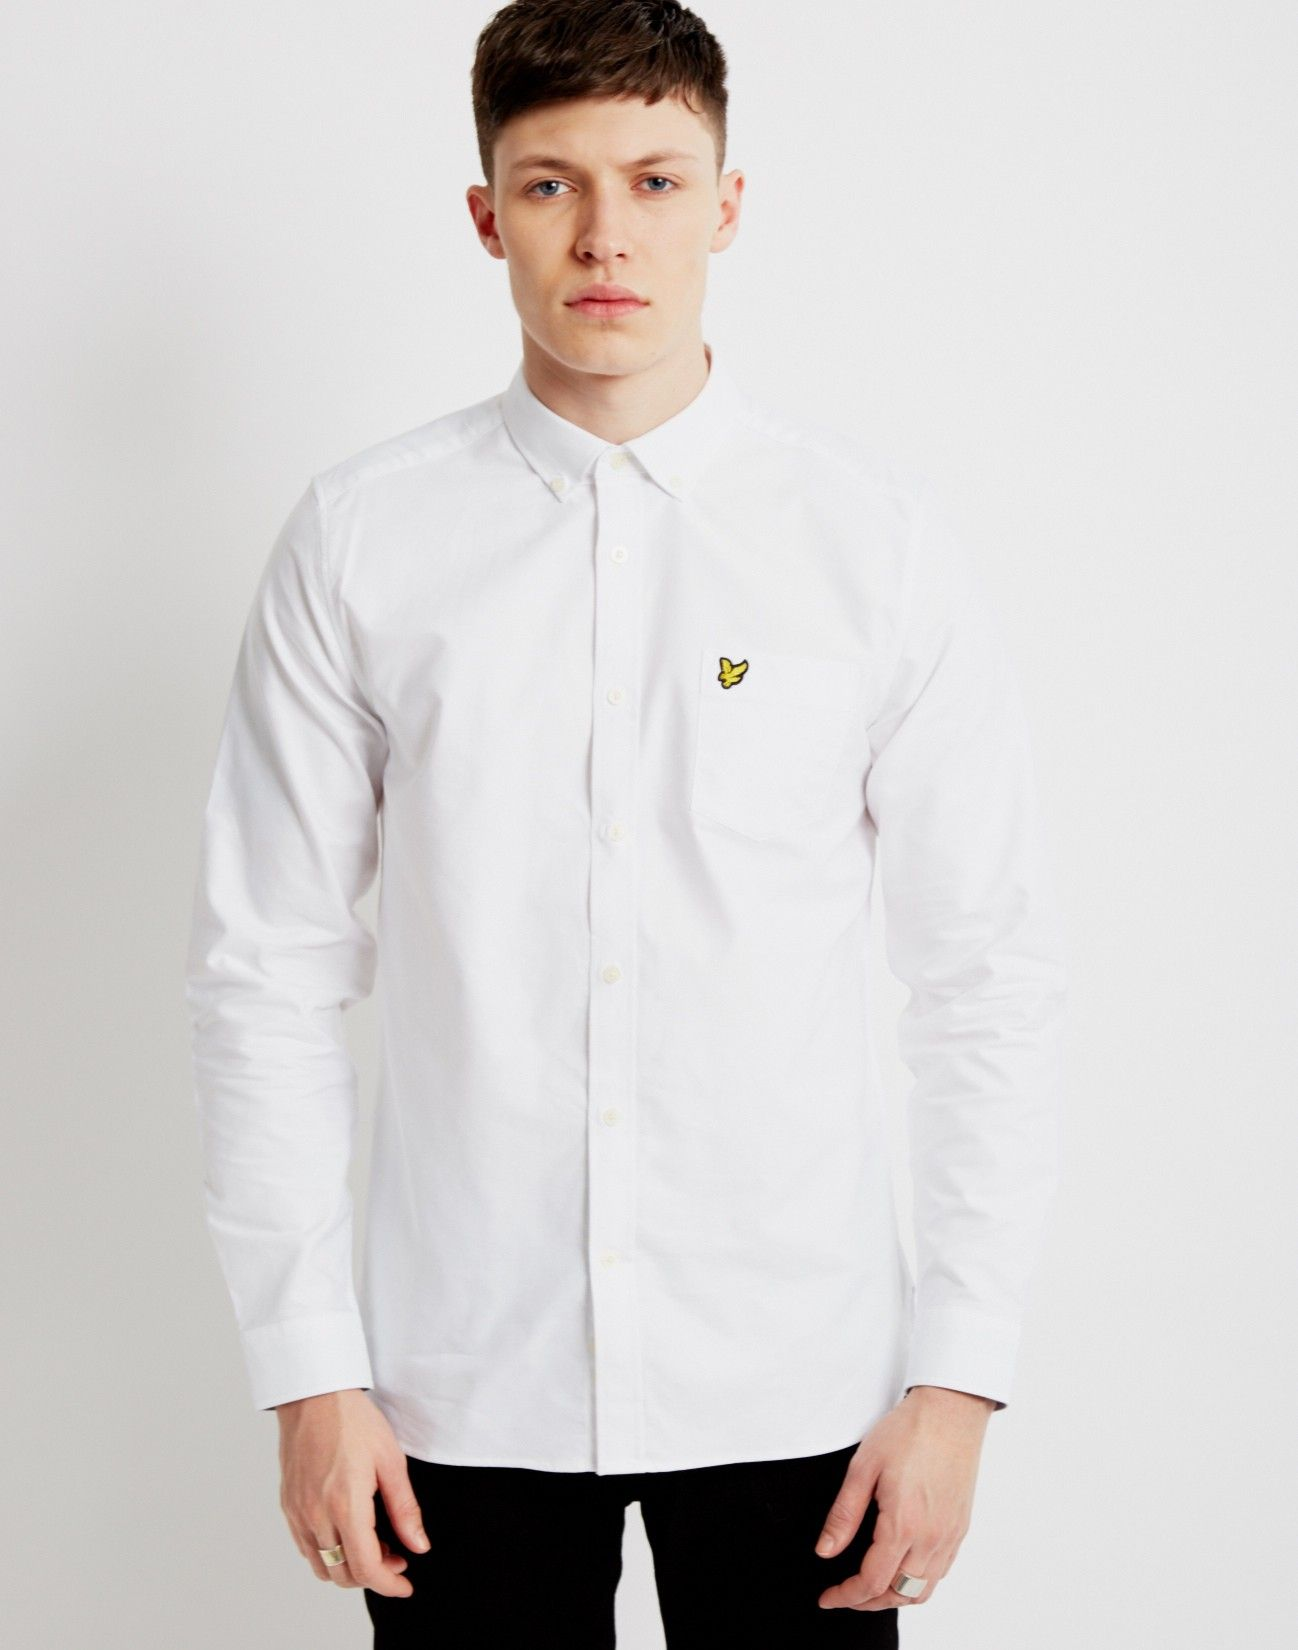 a688cee51 Lyle & Scott Long Sleeve Oxford Shirt White | Shop menswear clothing at The  Idle Man